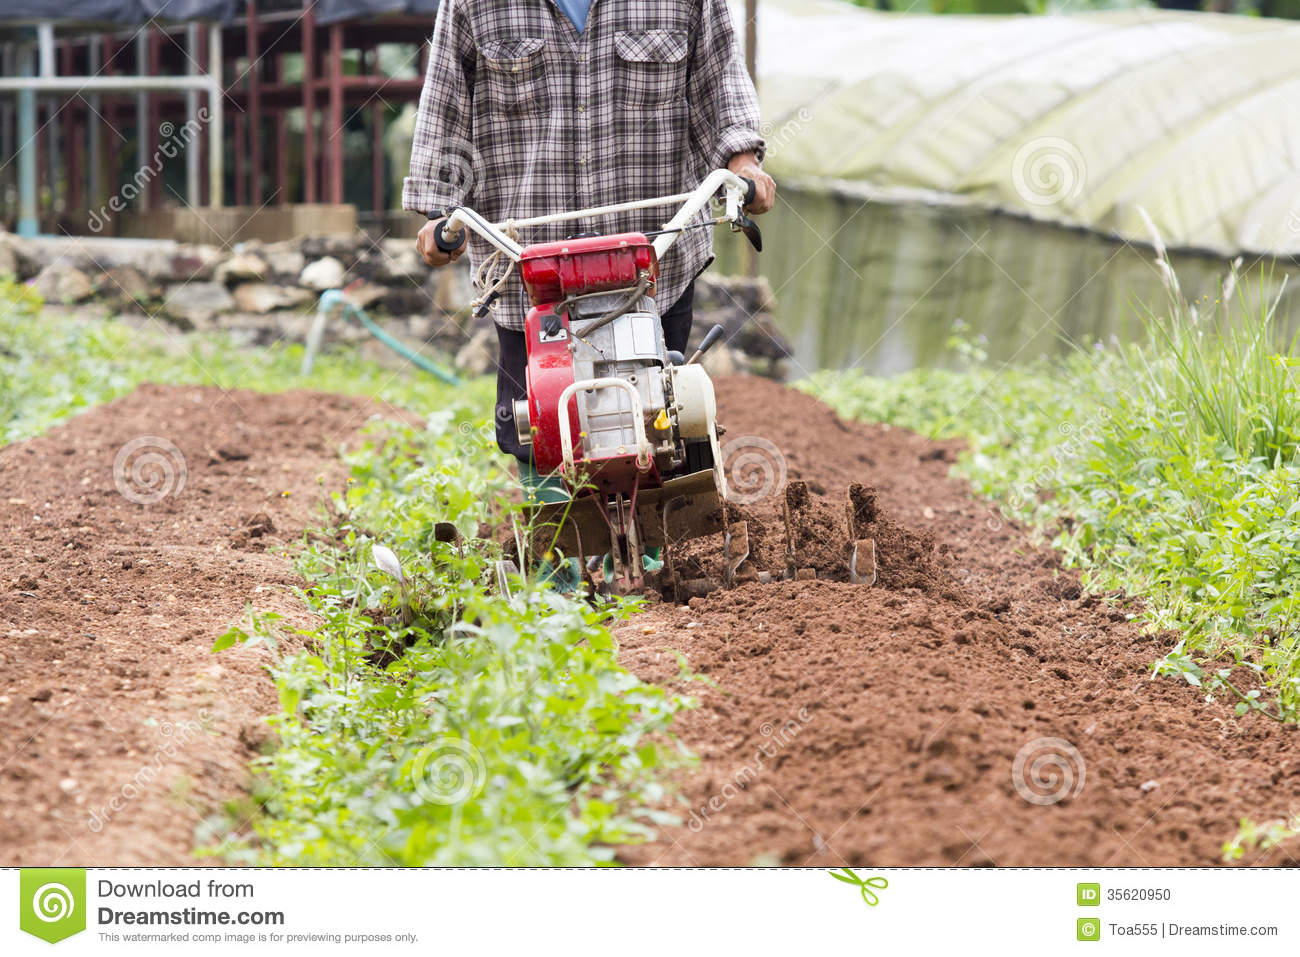 Rotary cultivator working in garden